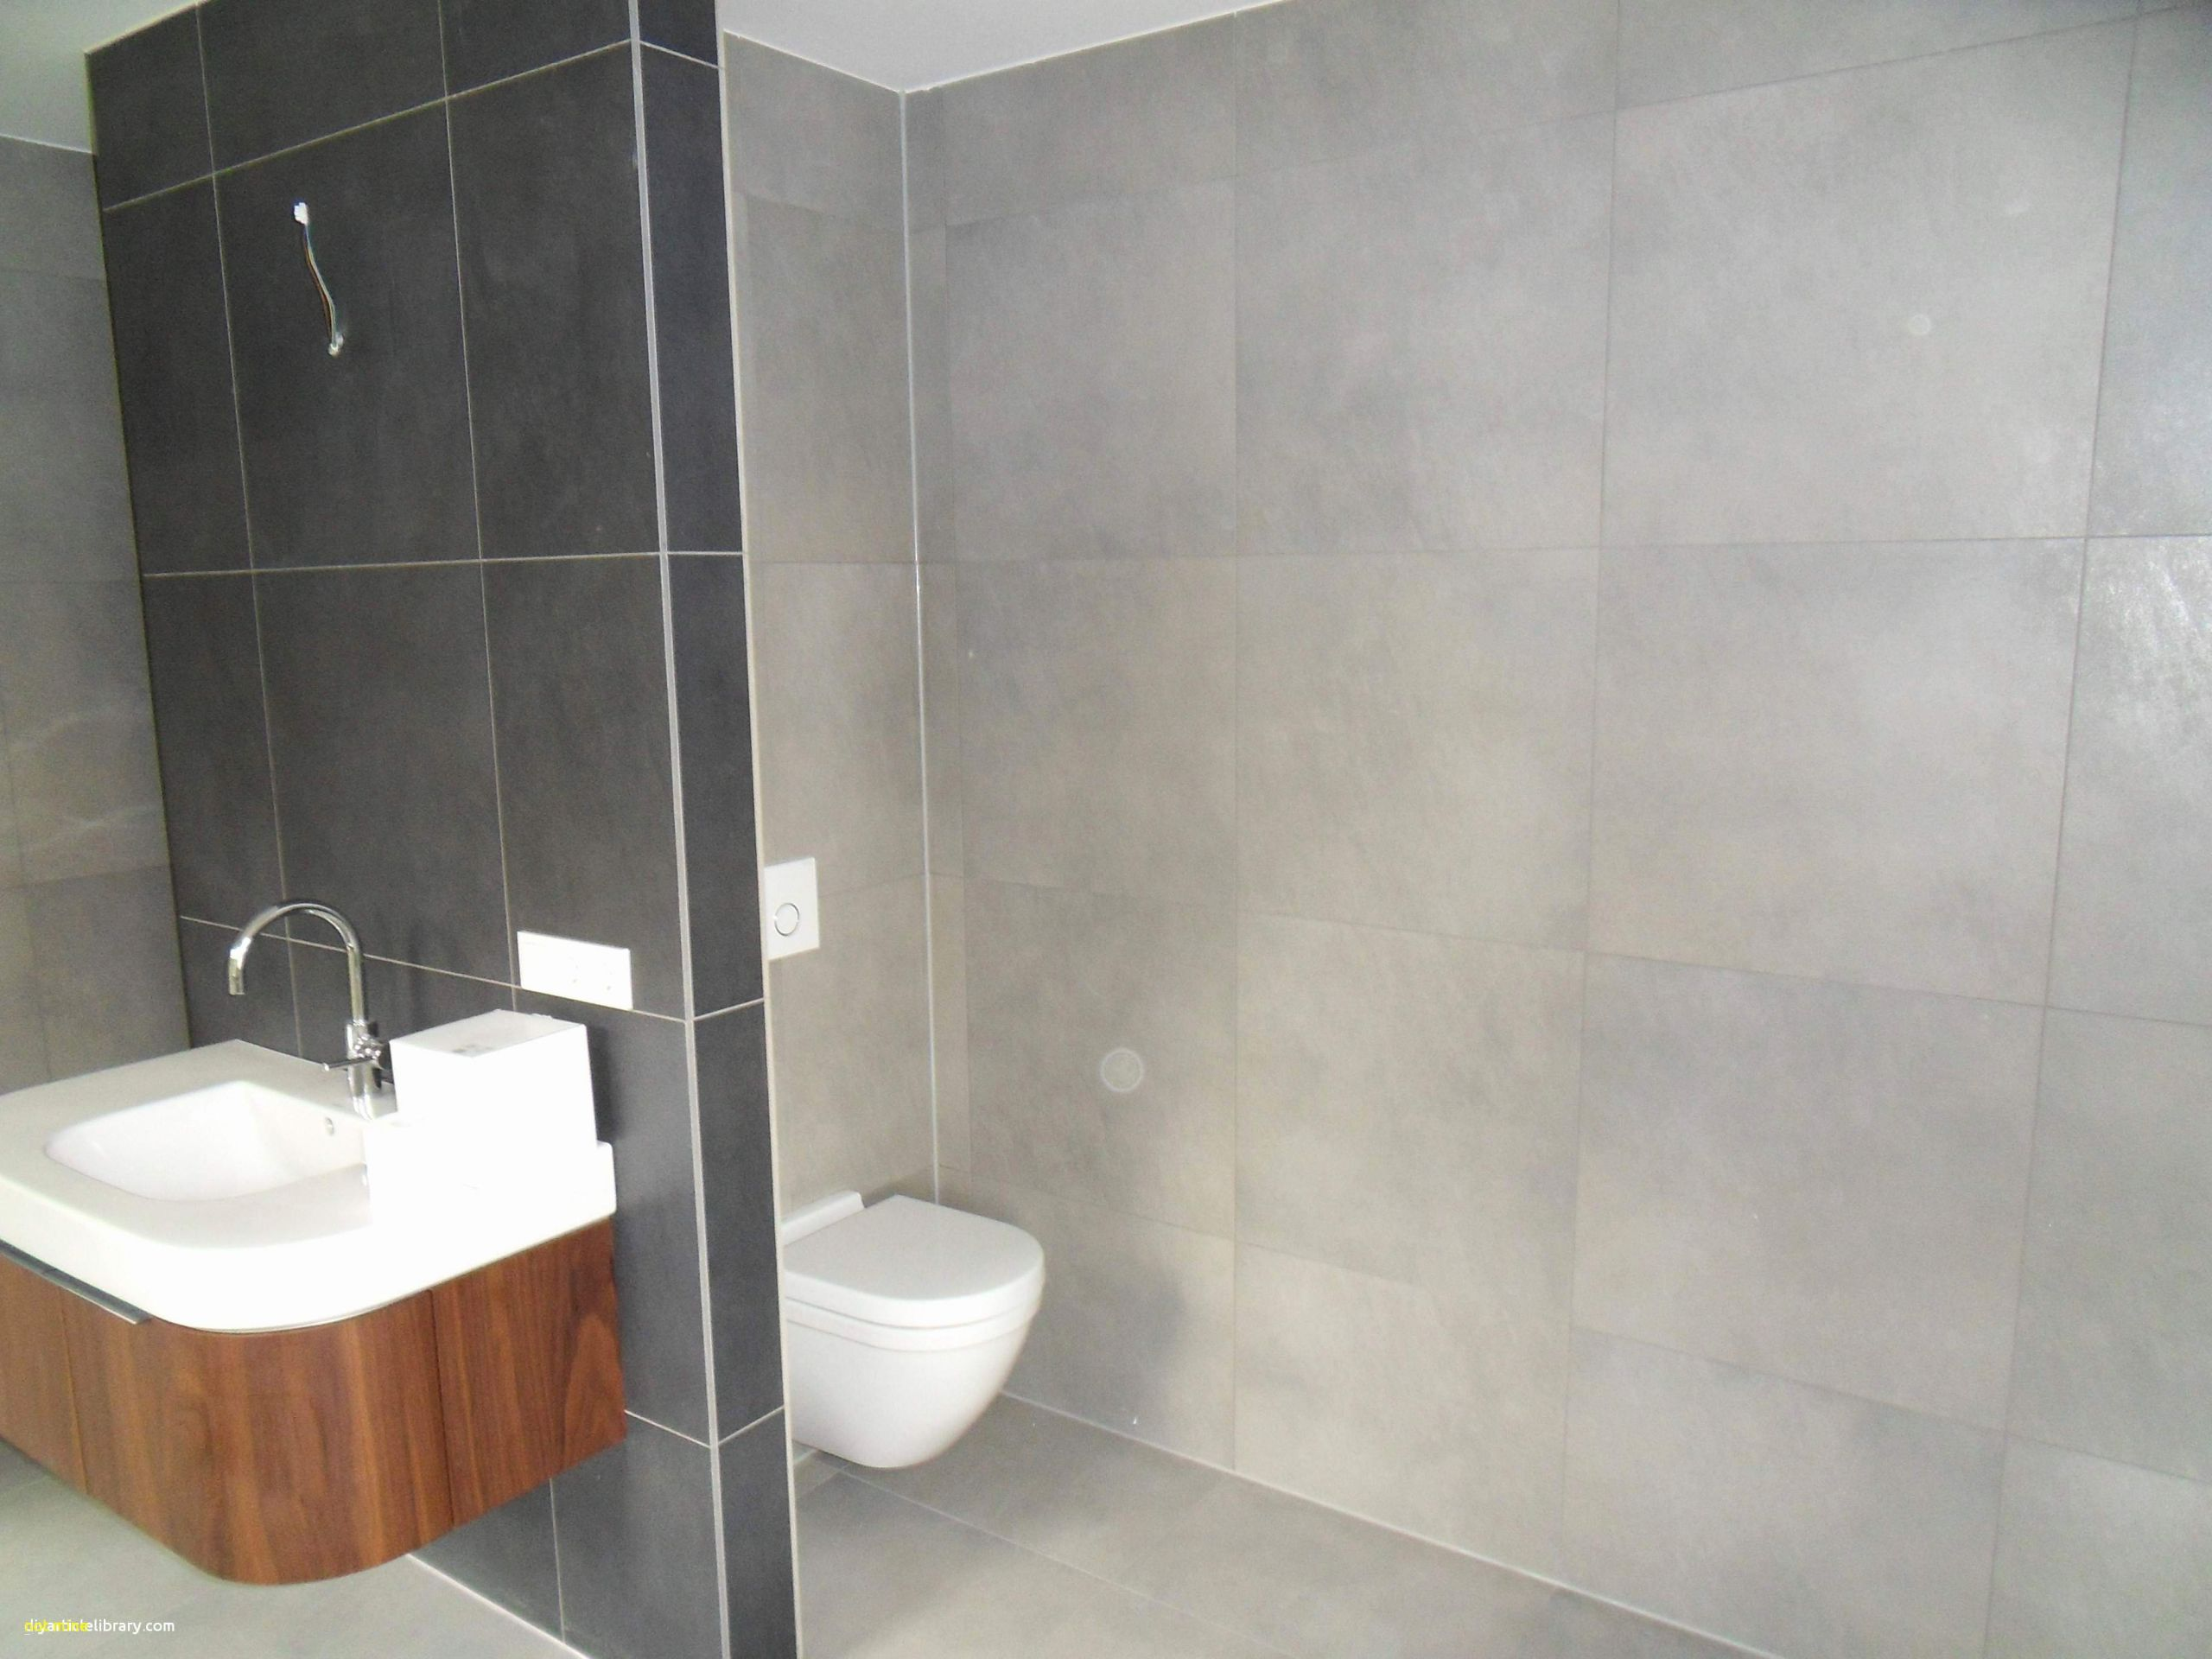 farbe taupe inspirierend badezimmer tipps nizza badezimmer schrank badezimmerschrank momax 0d galerie of farbe taupe